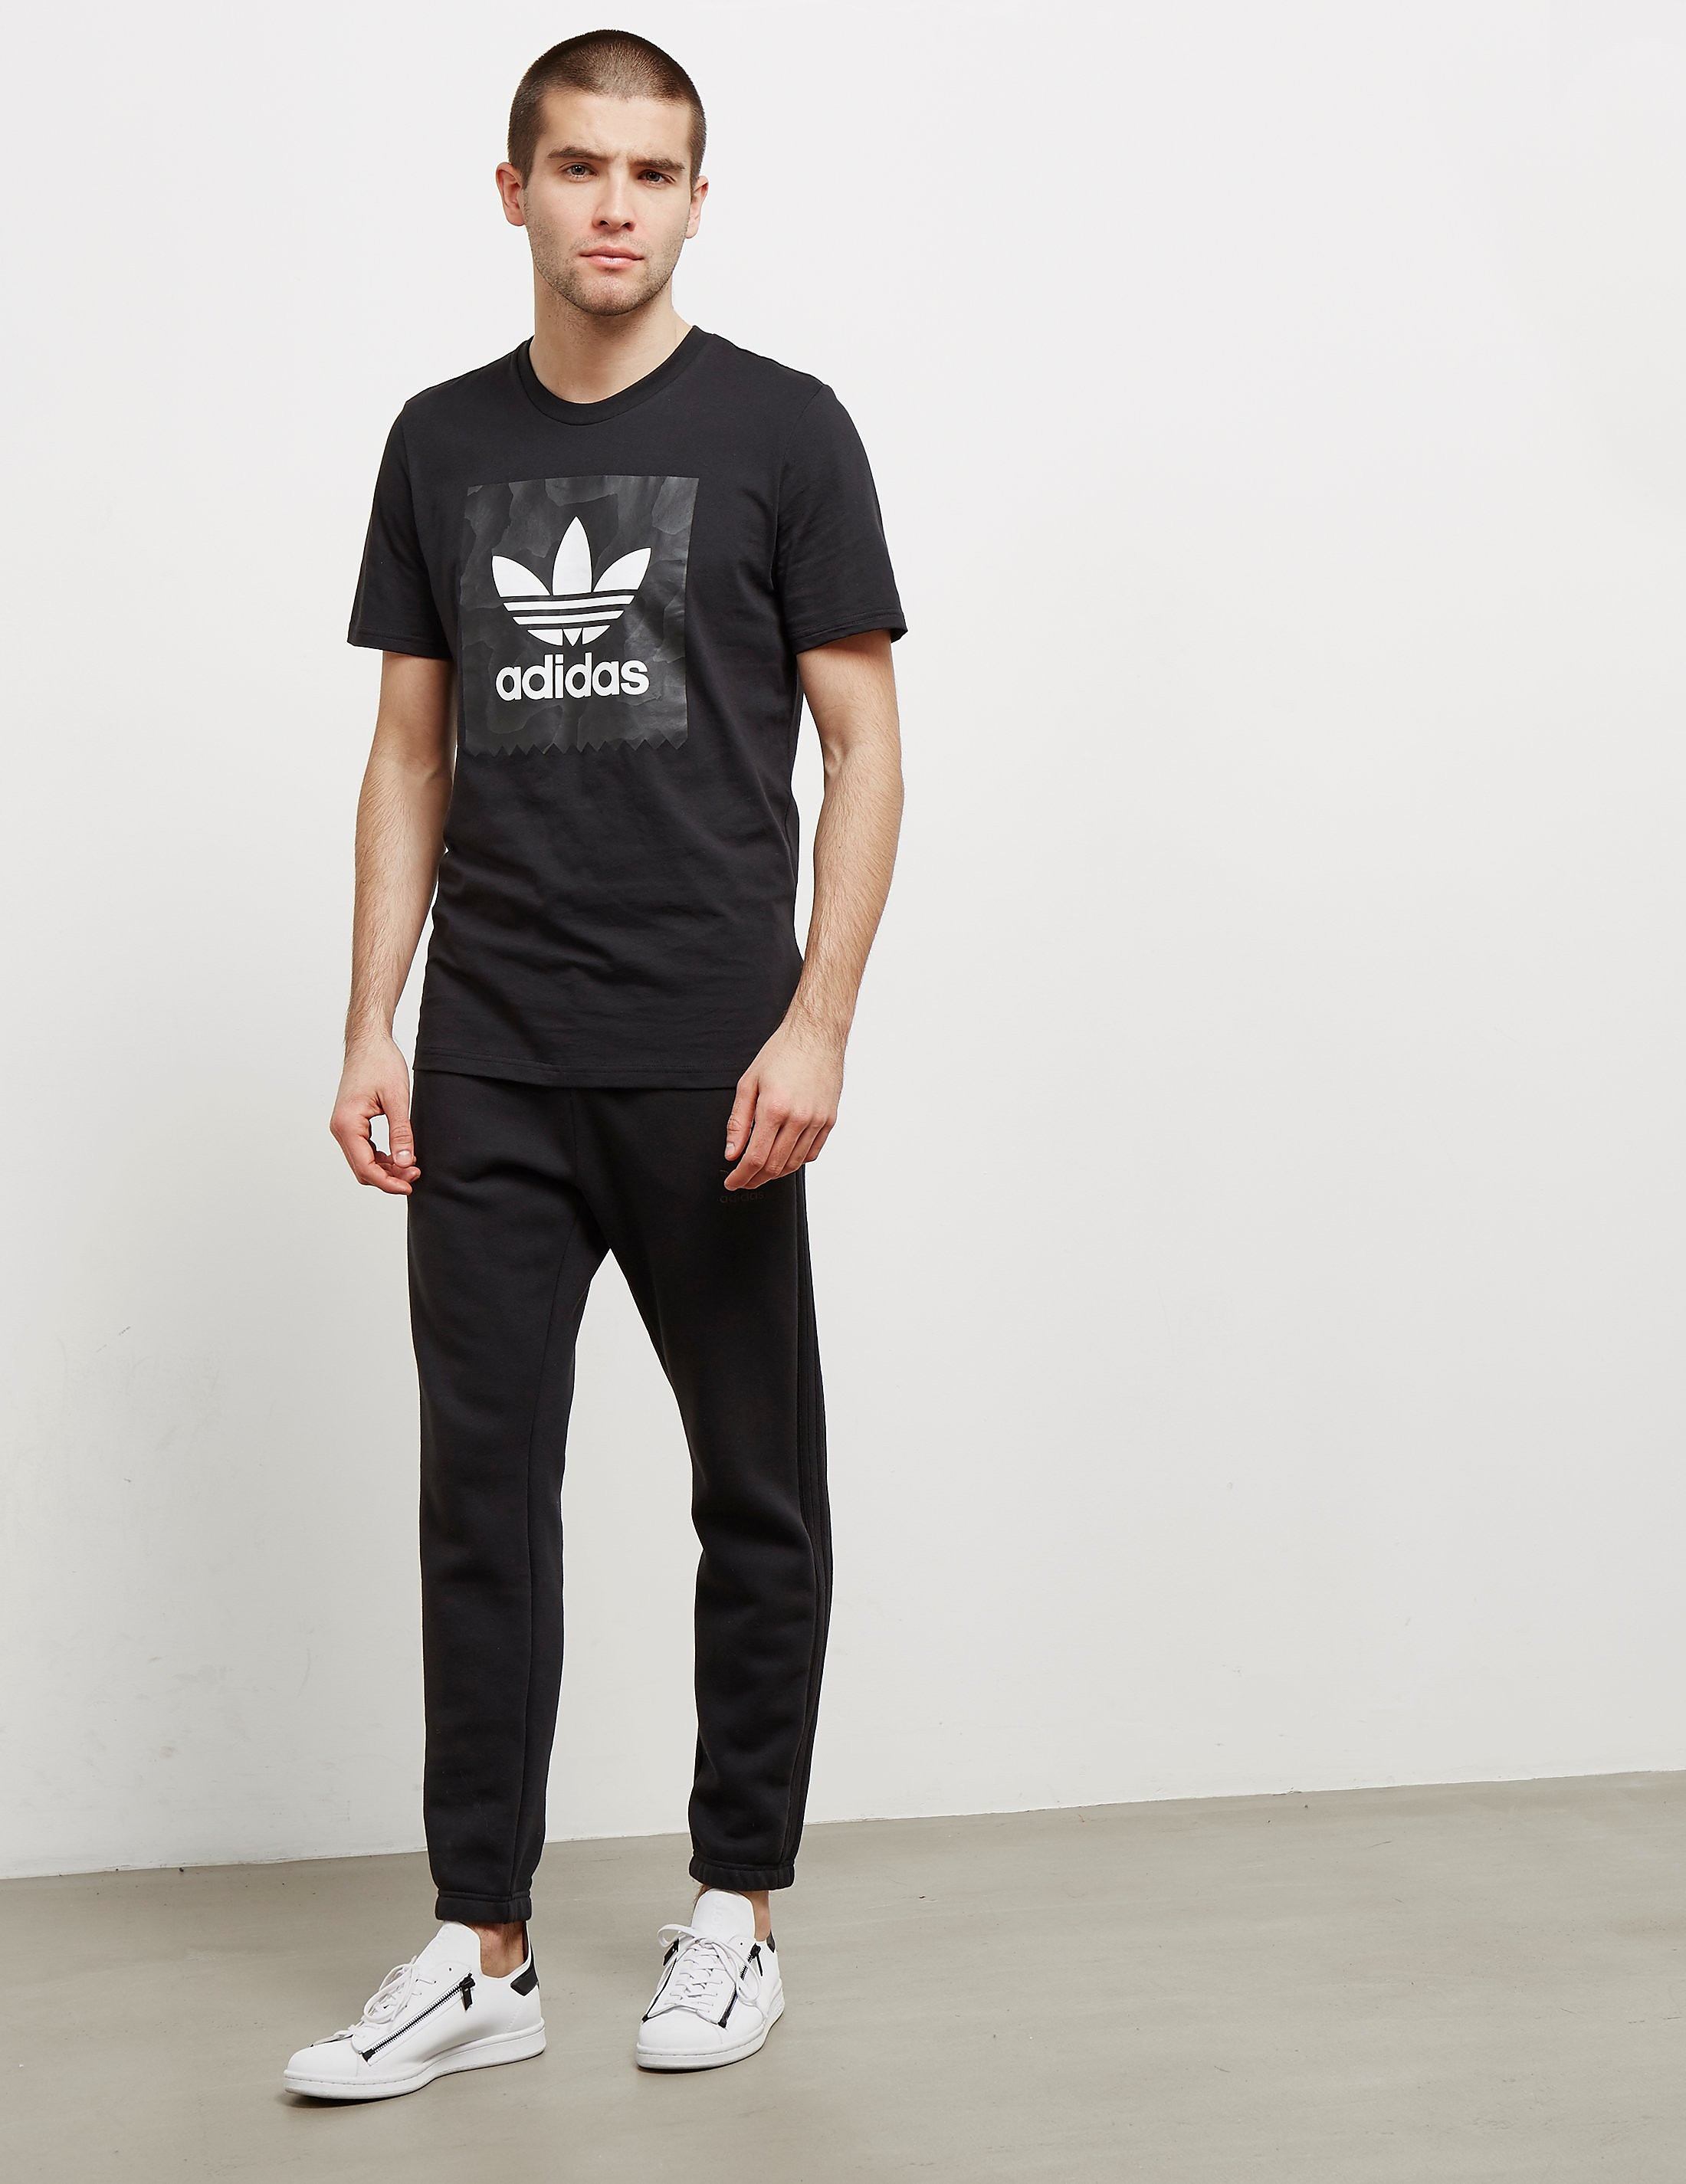 adidas Originals Skateboarding Warp Short Sleeve T-Shirt